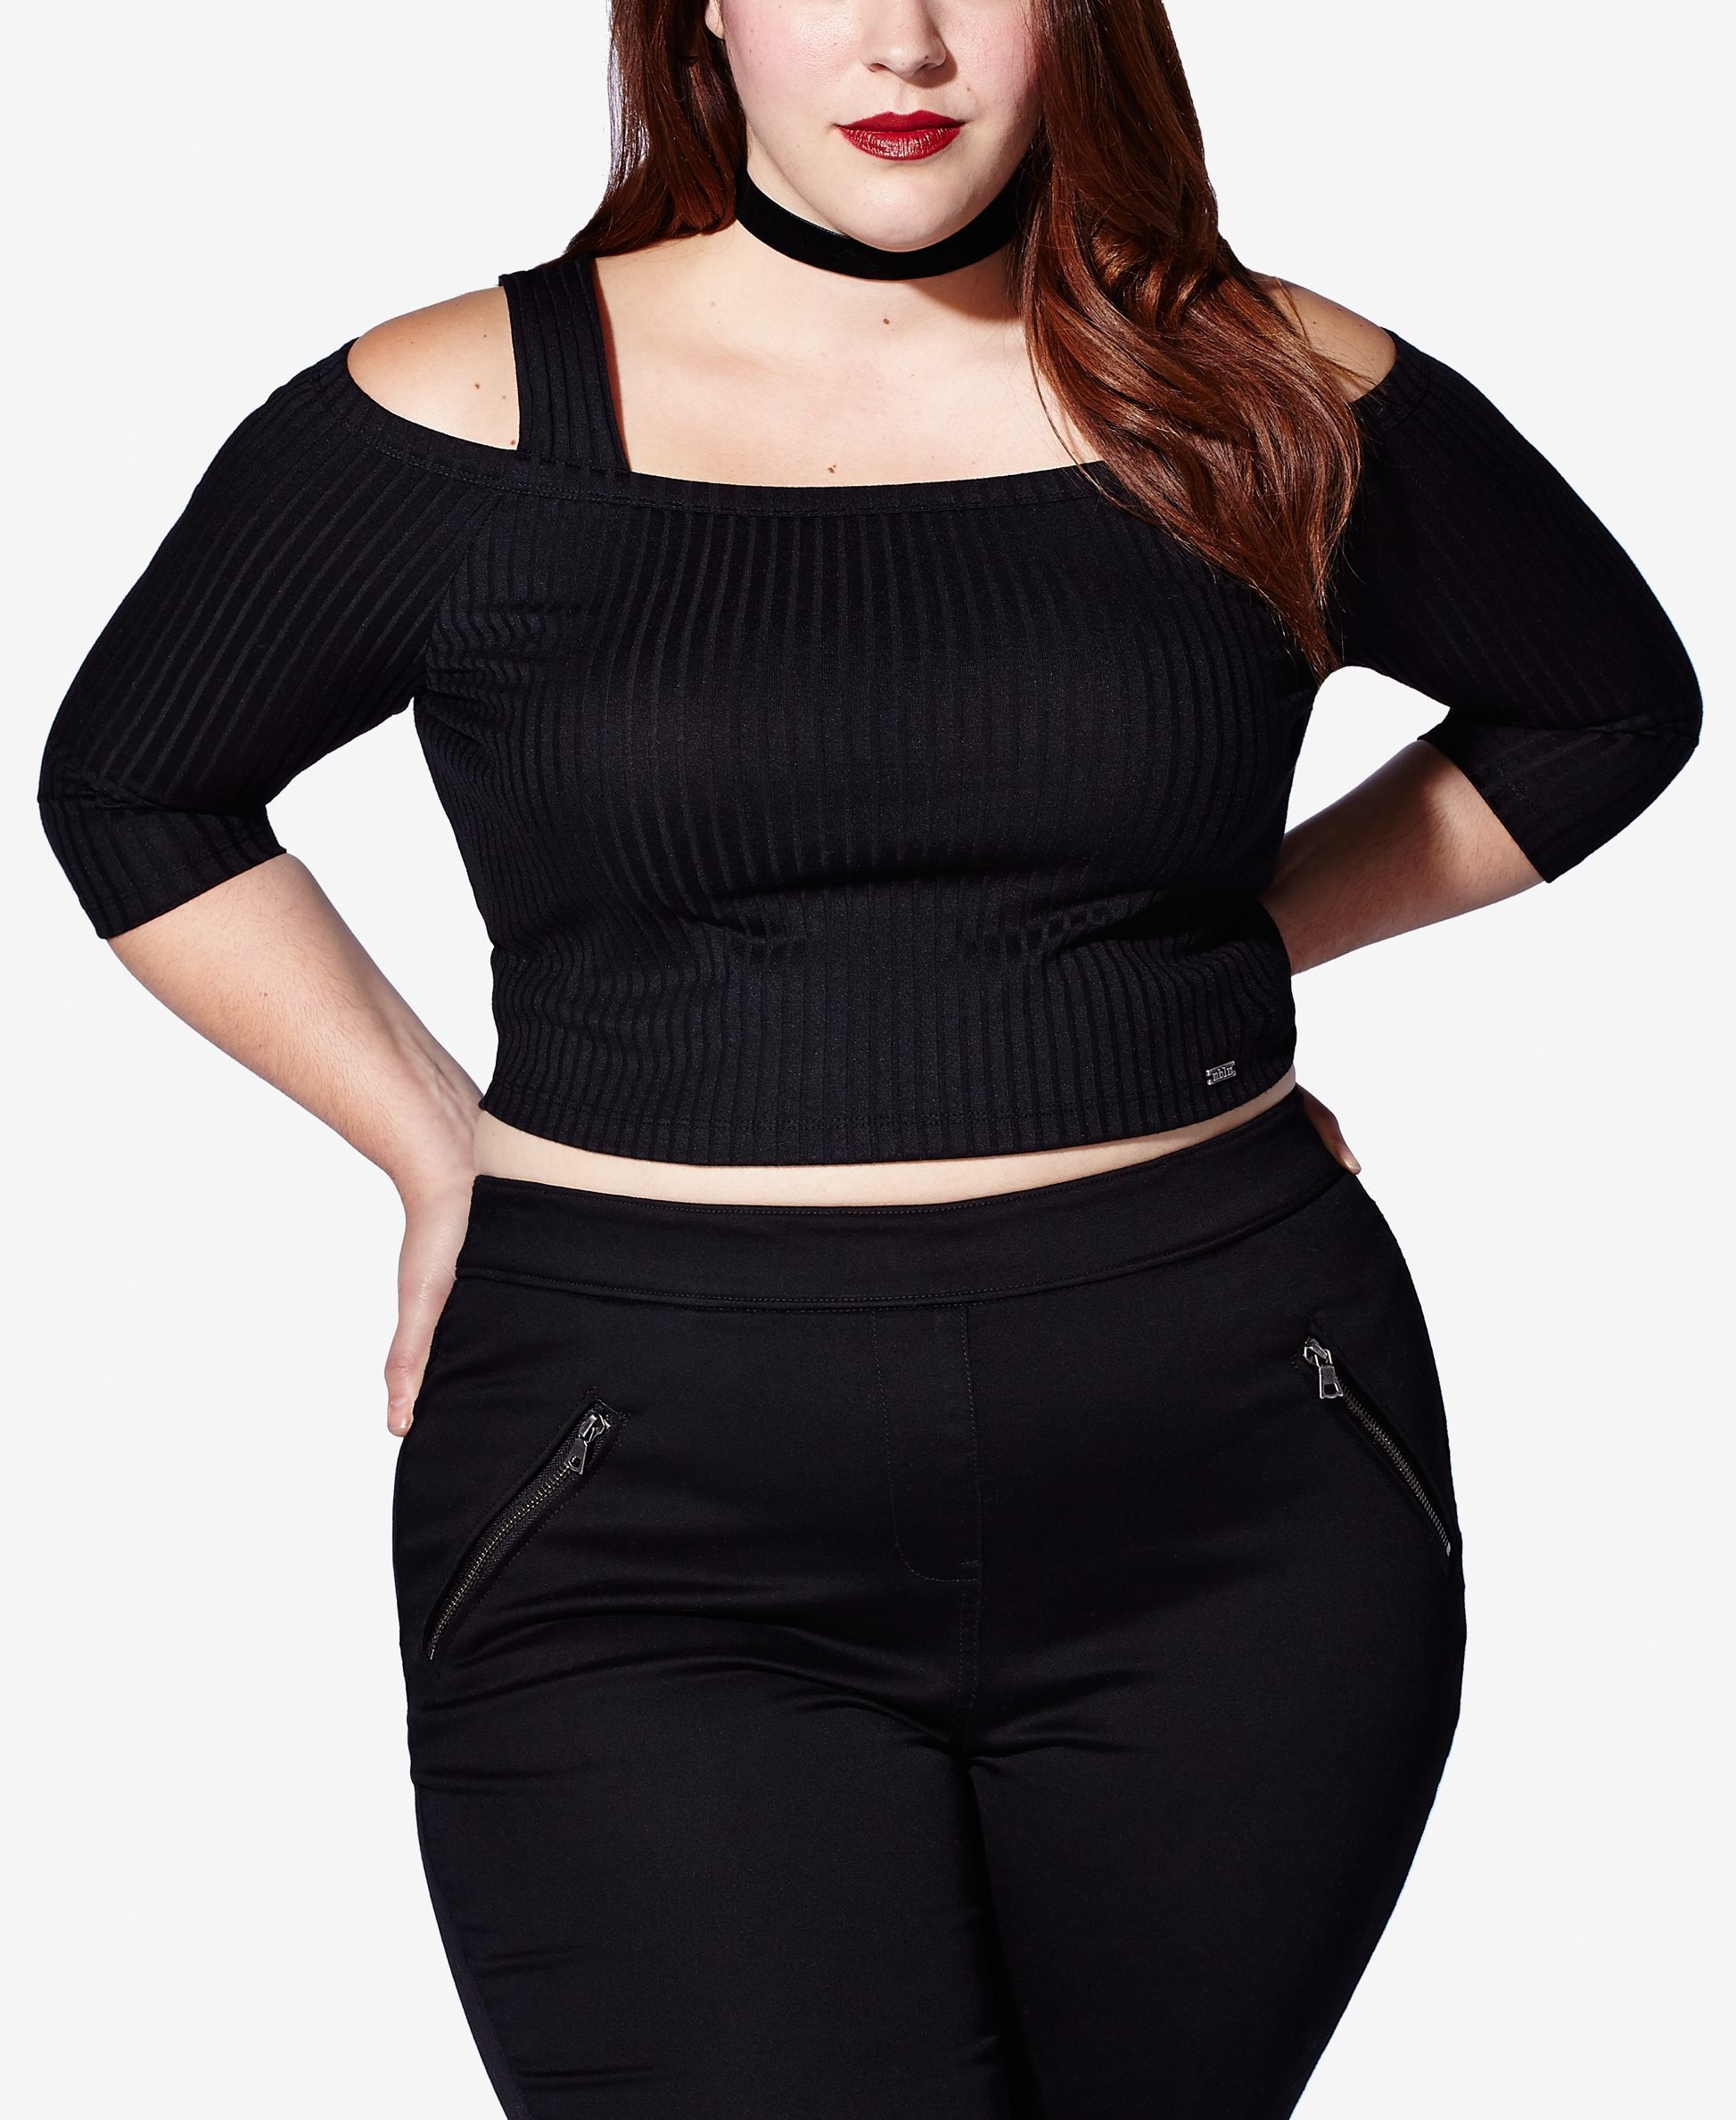 1d21427afcd85 mblm by Tess Holliday Trendy Plus Size Cold-Shoulder Crop Top